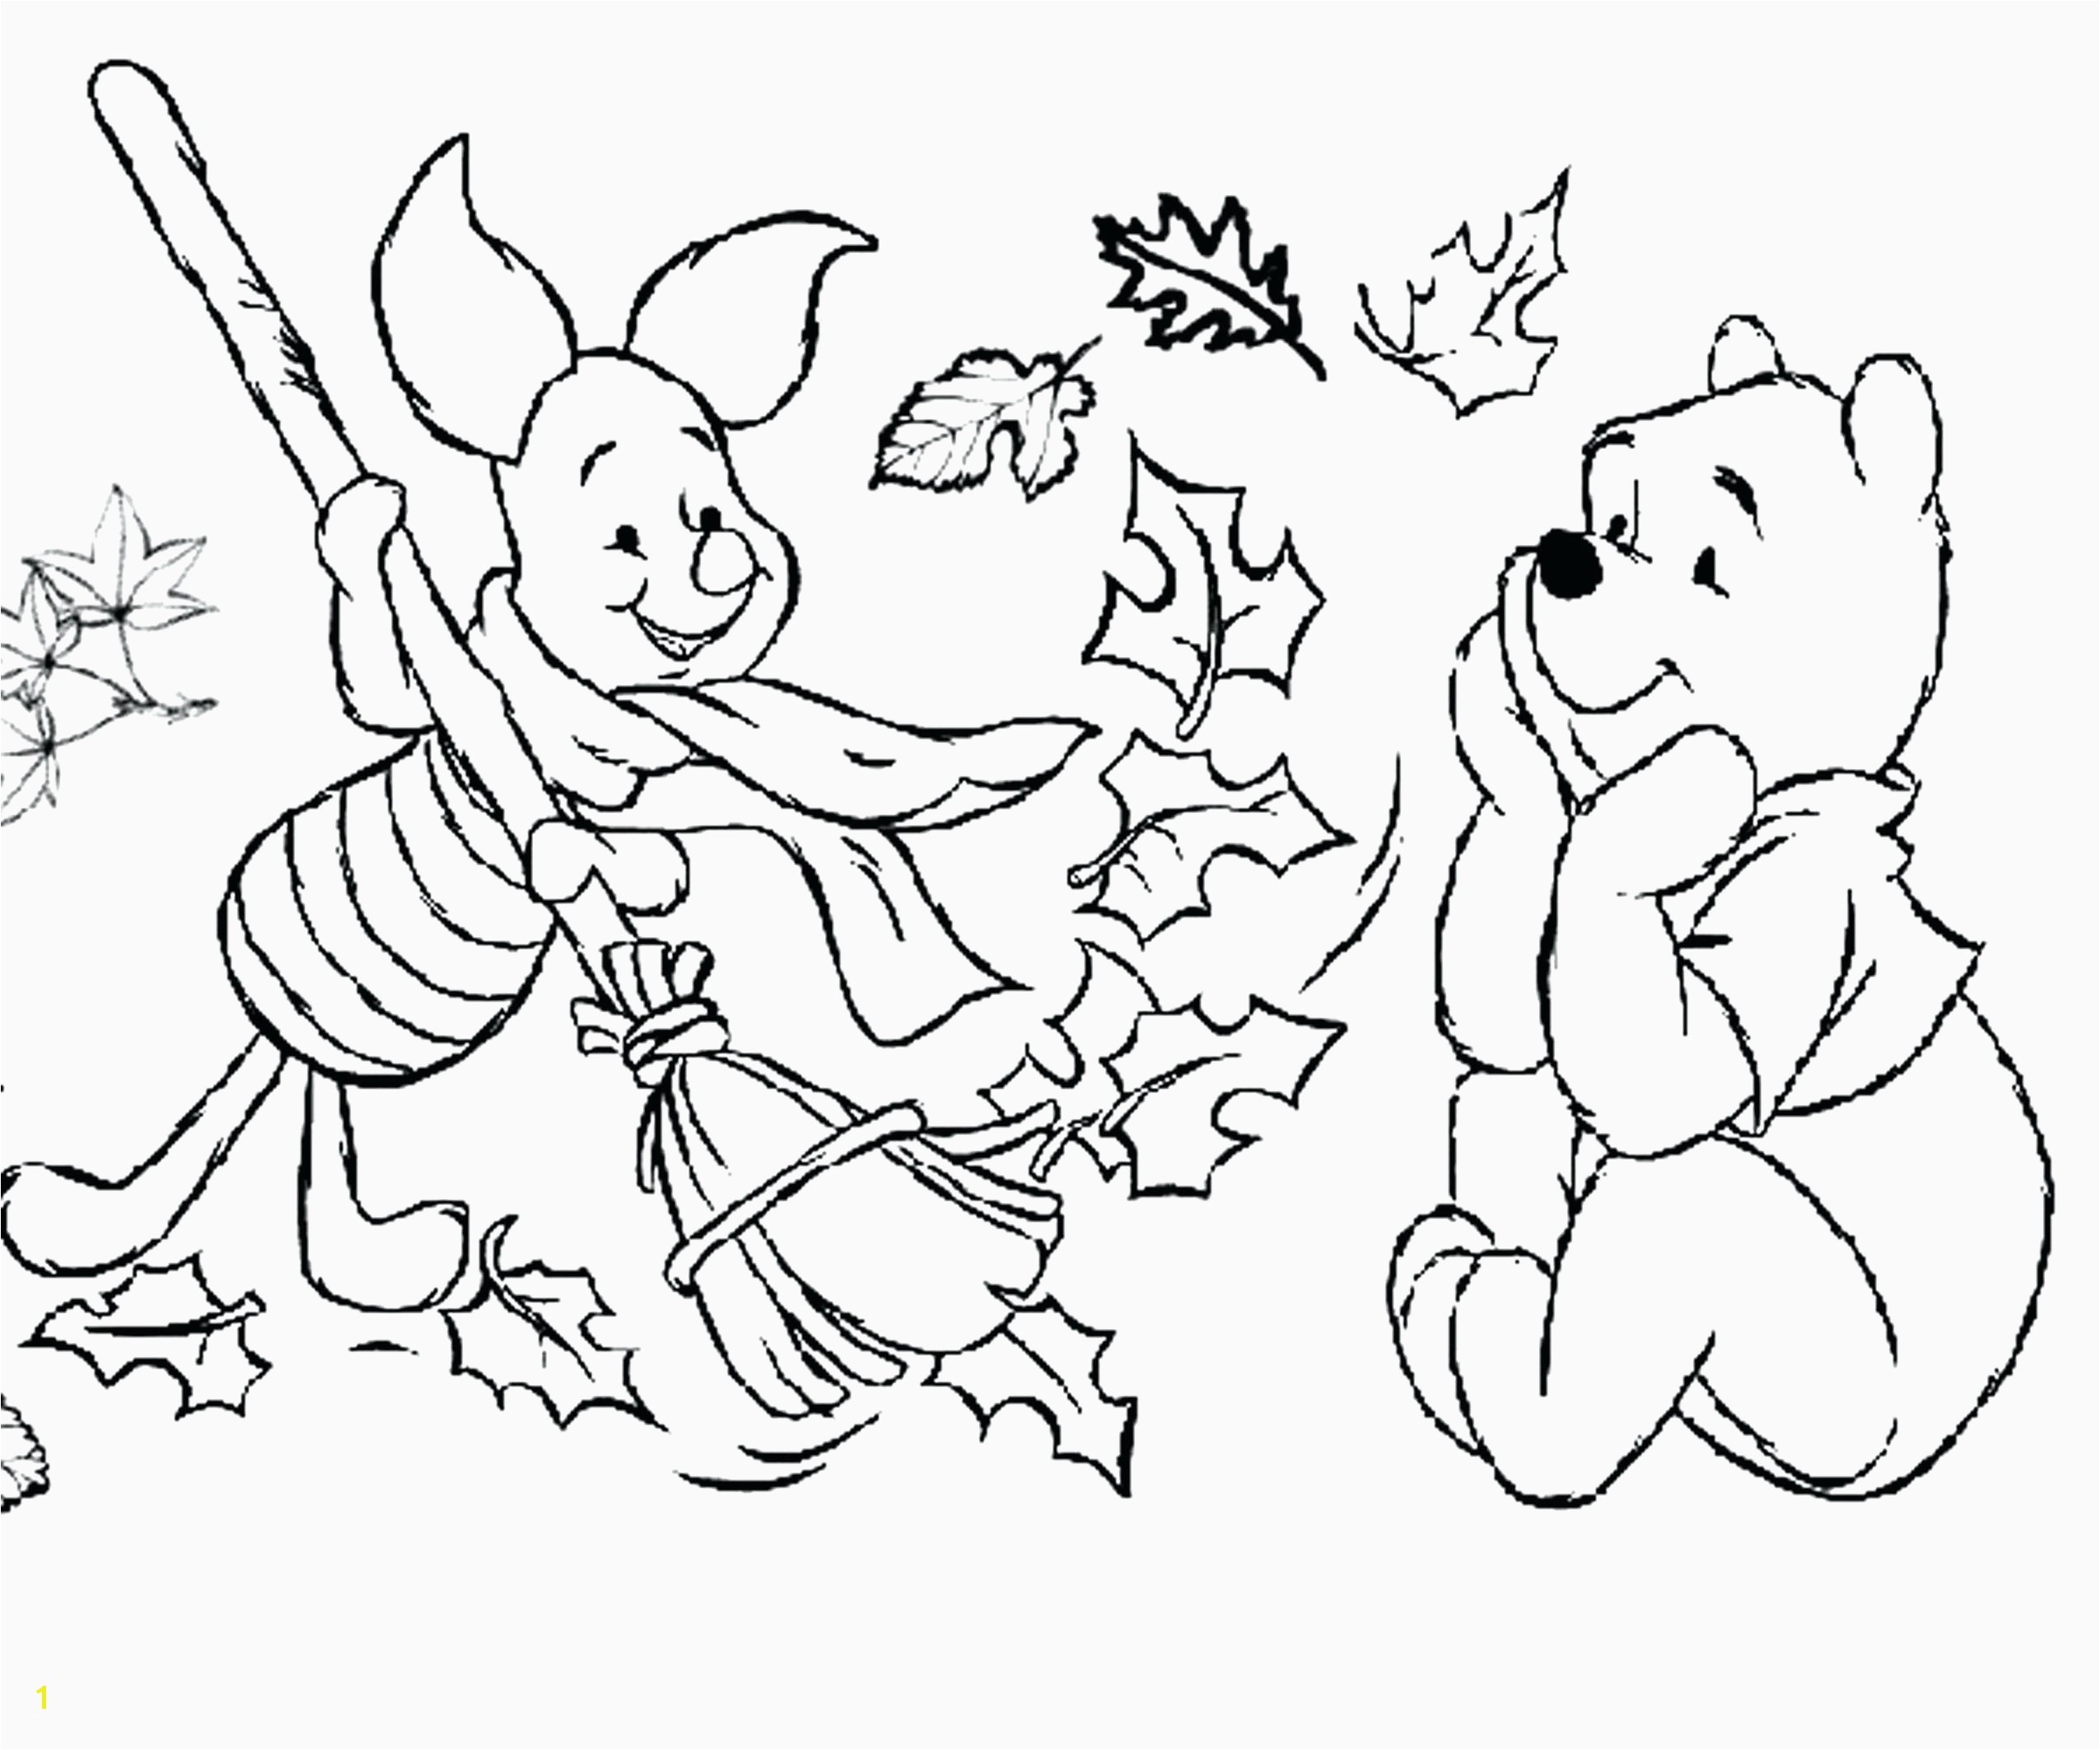 Autumn Coloring Pages Printable Awesome Kids Printable Coloring Pages Elegant Fall Coloring Pages 0d Page